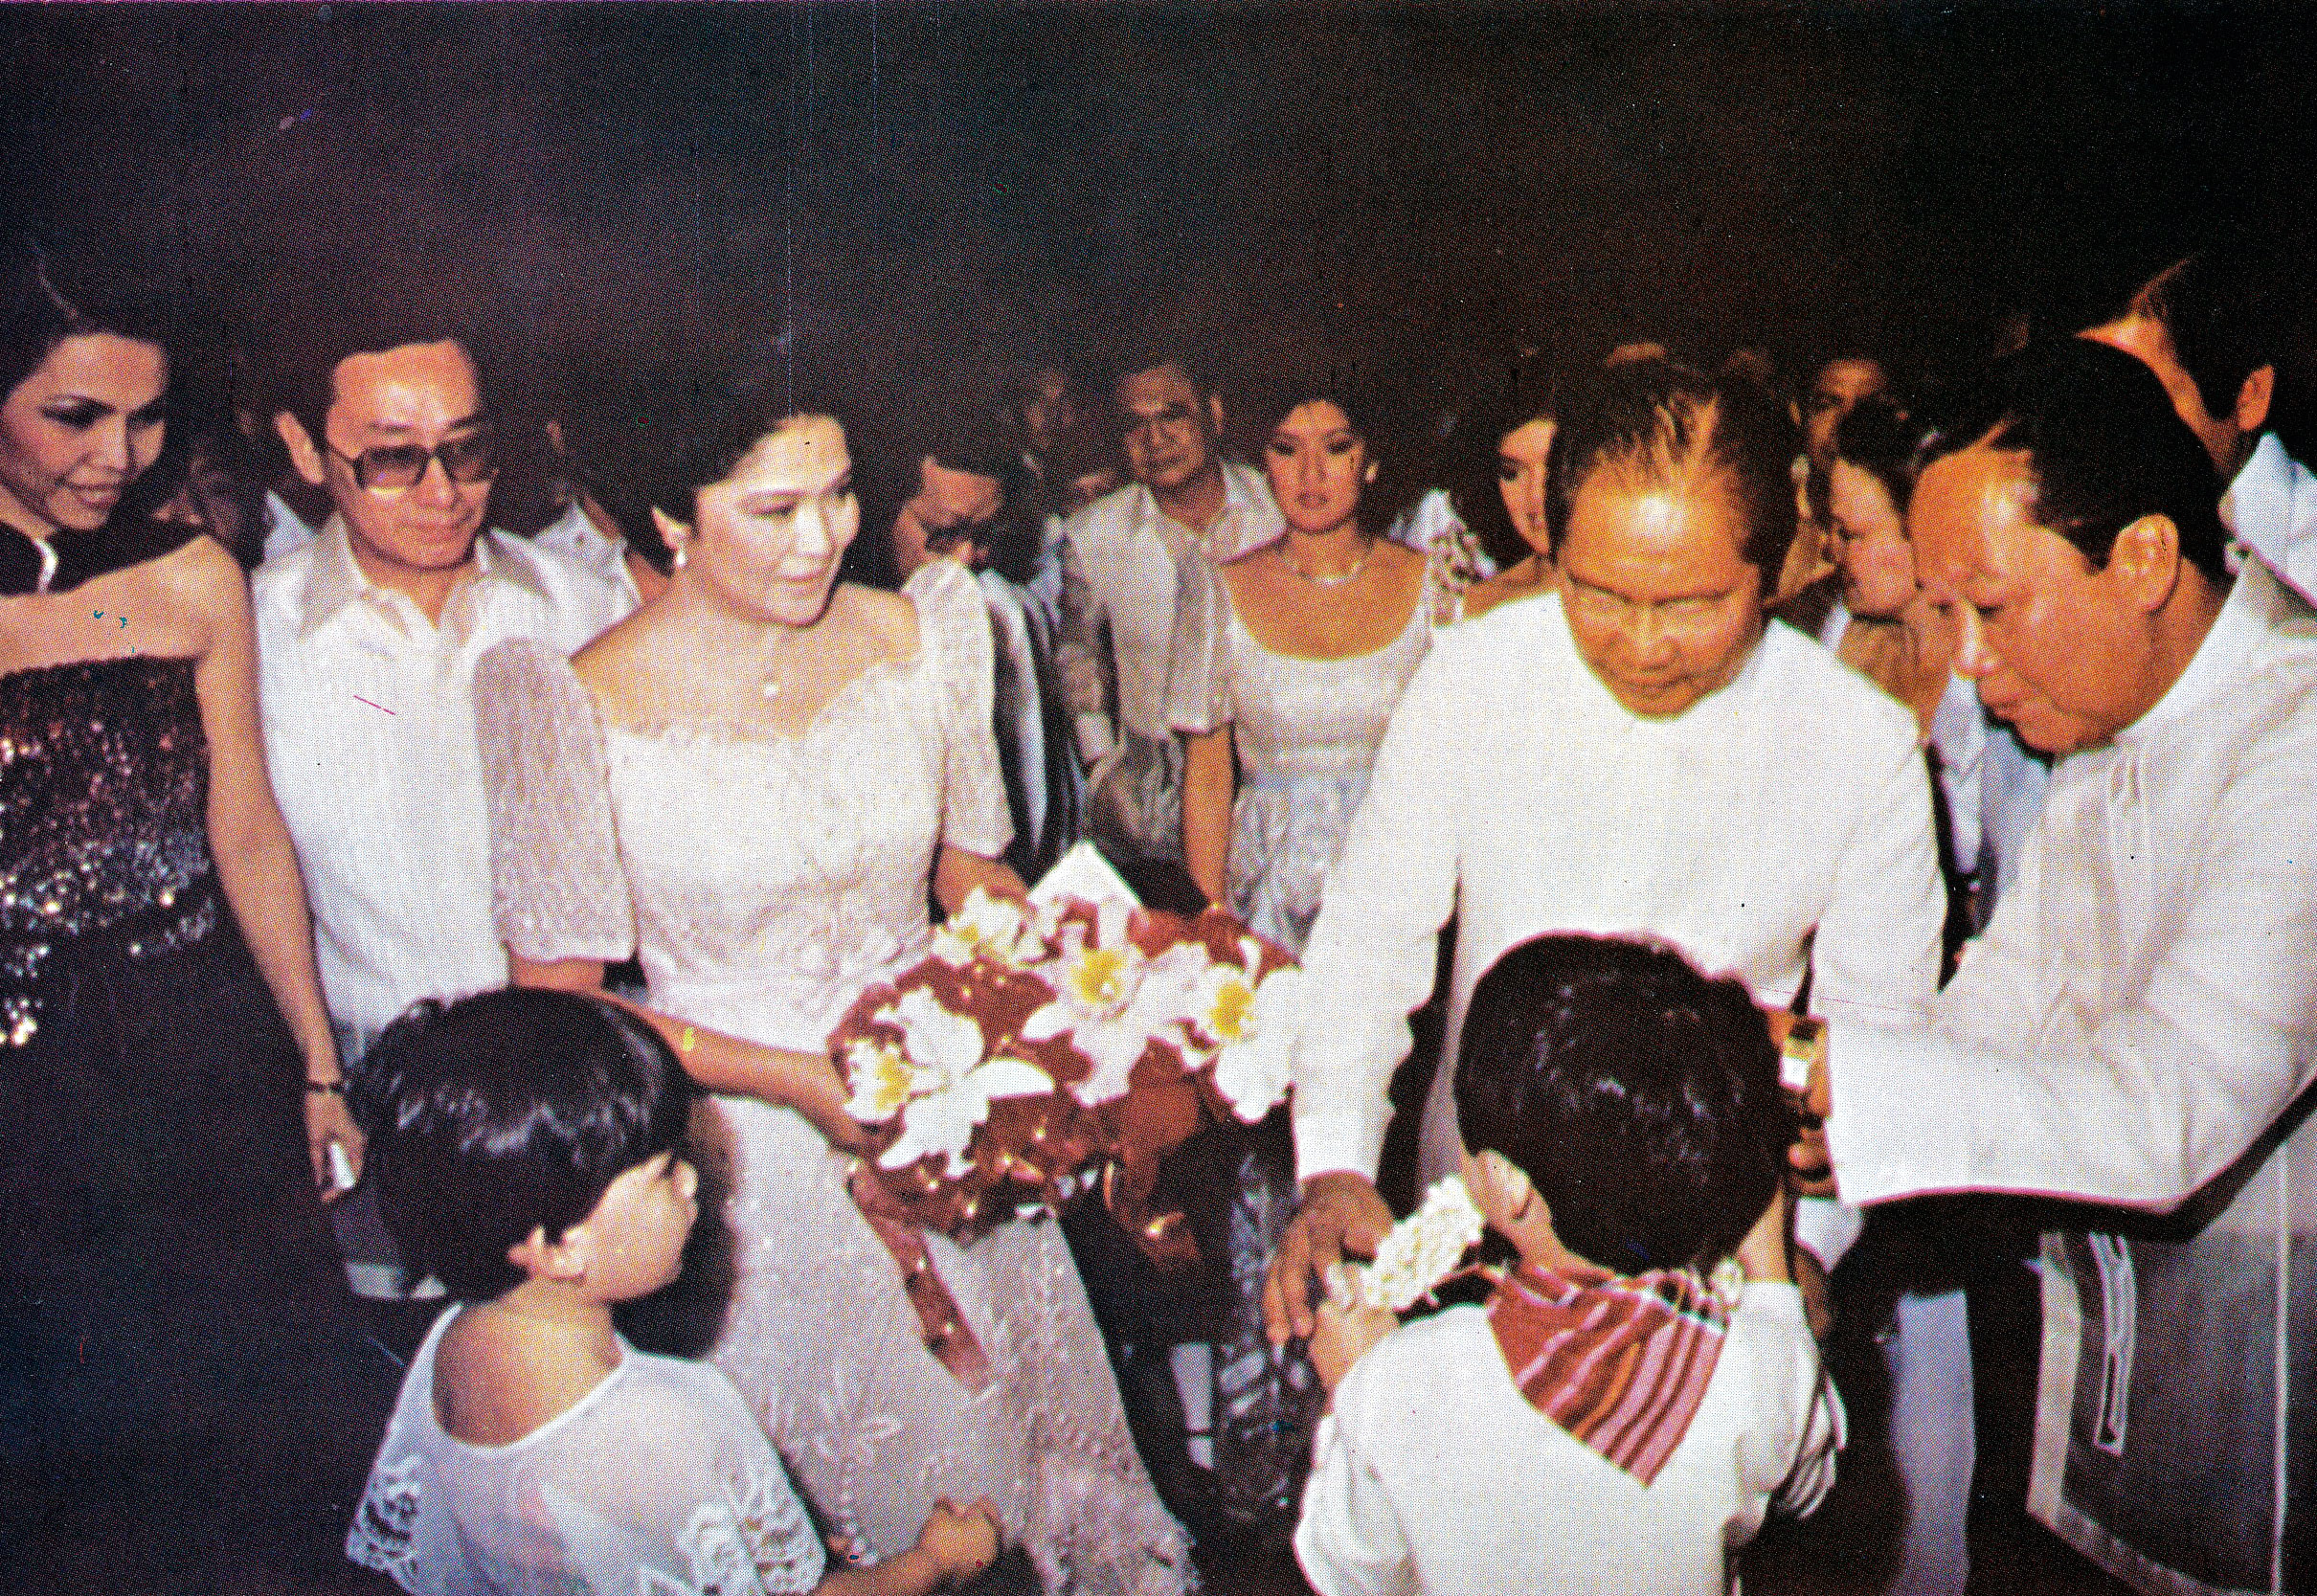 Imelda Marcos photographed during the MIFF inauguration